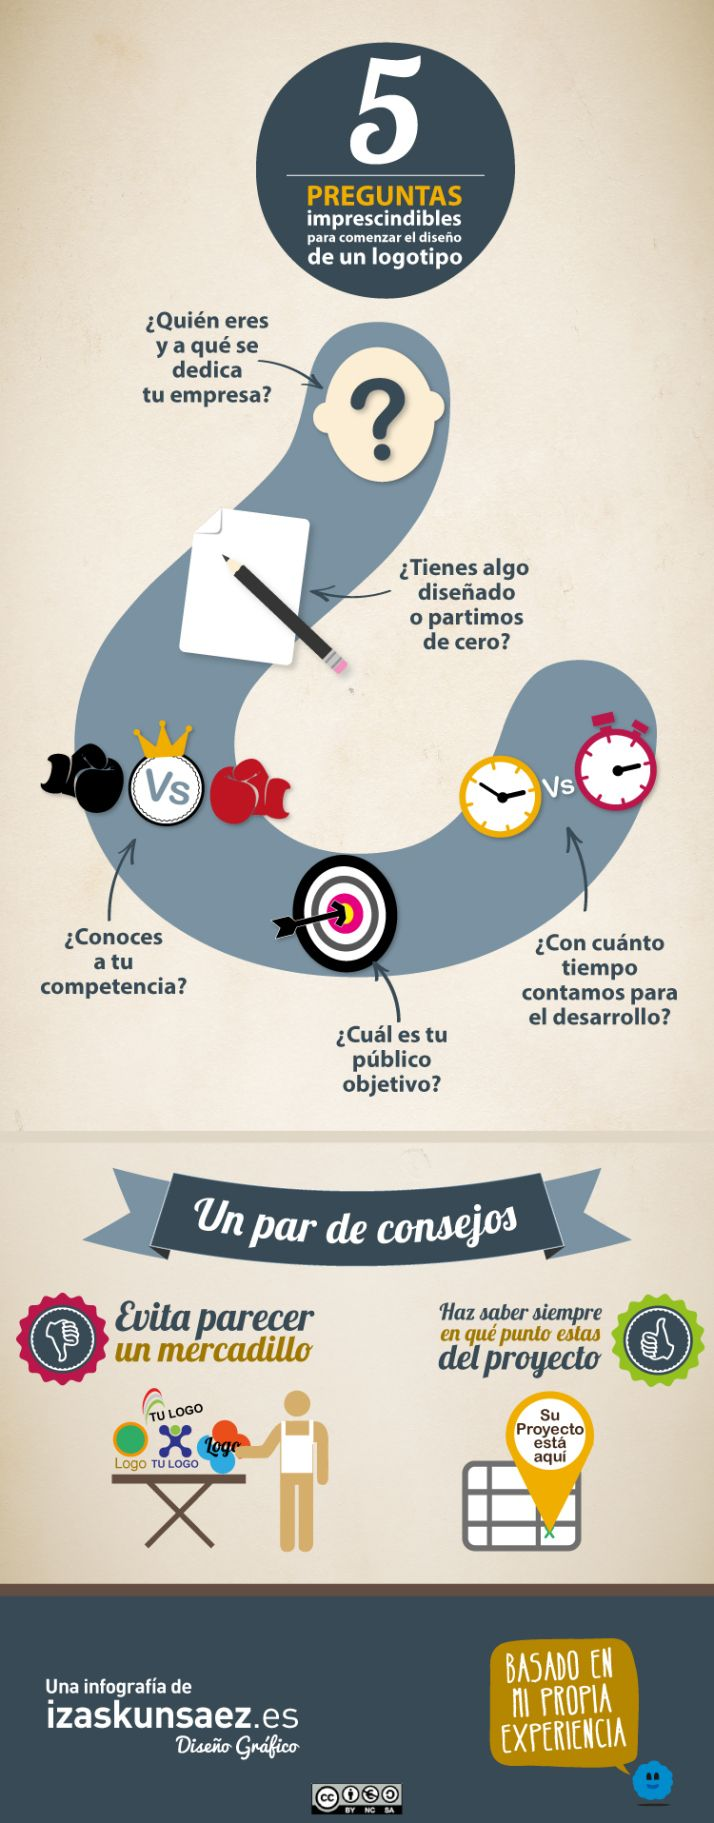 5 preguntas previas al diseño de un logo #infografia #infographic #design #marketing